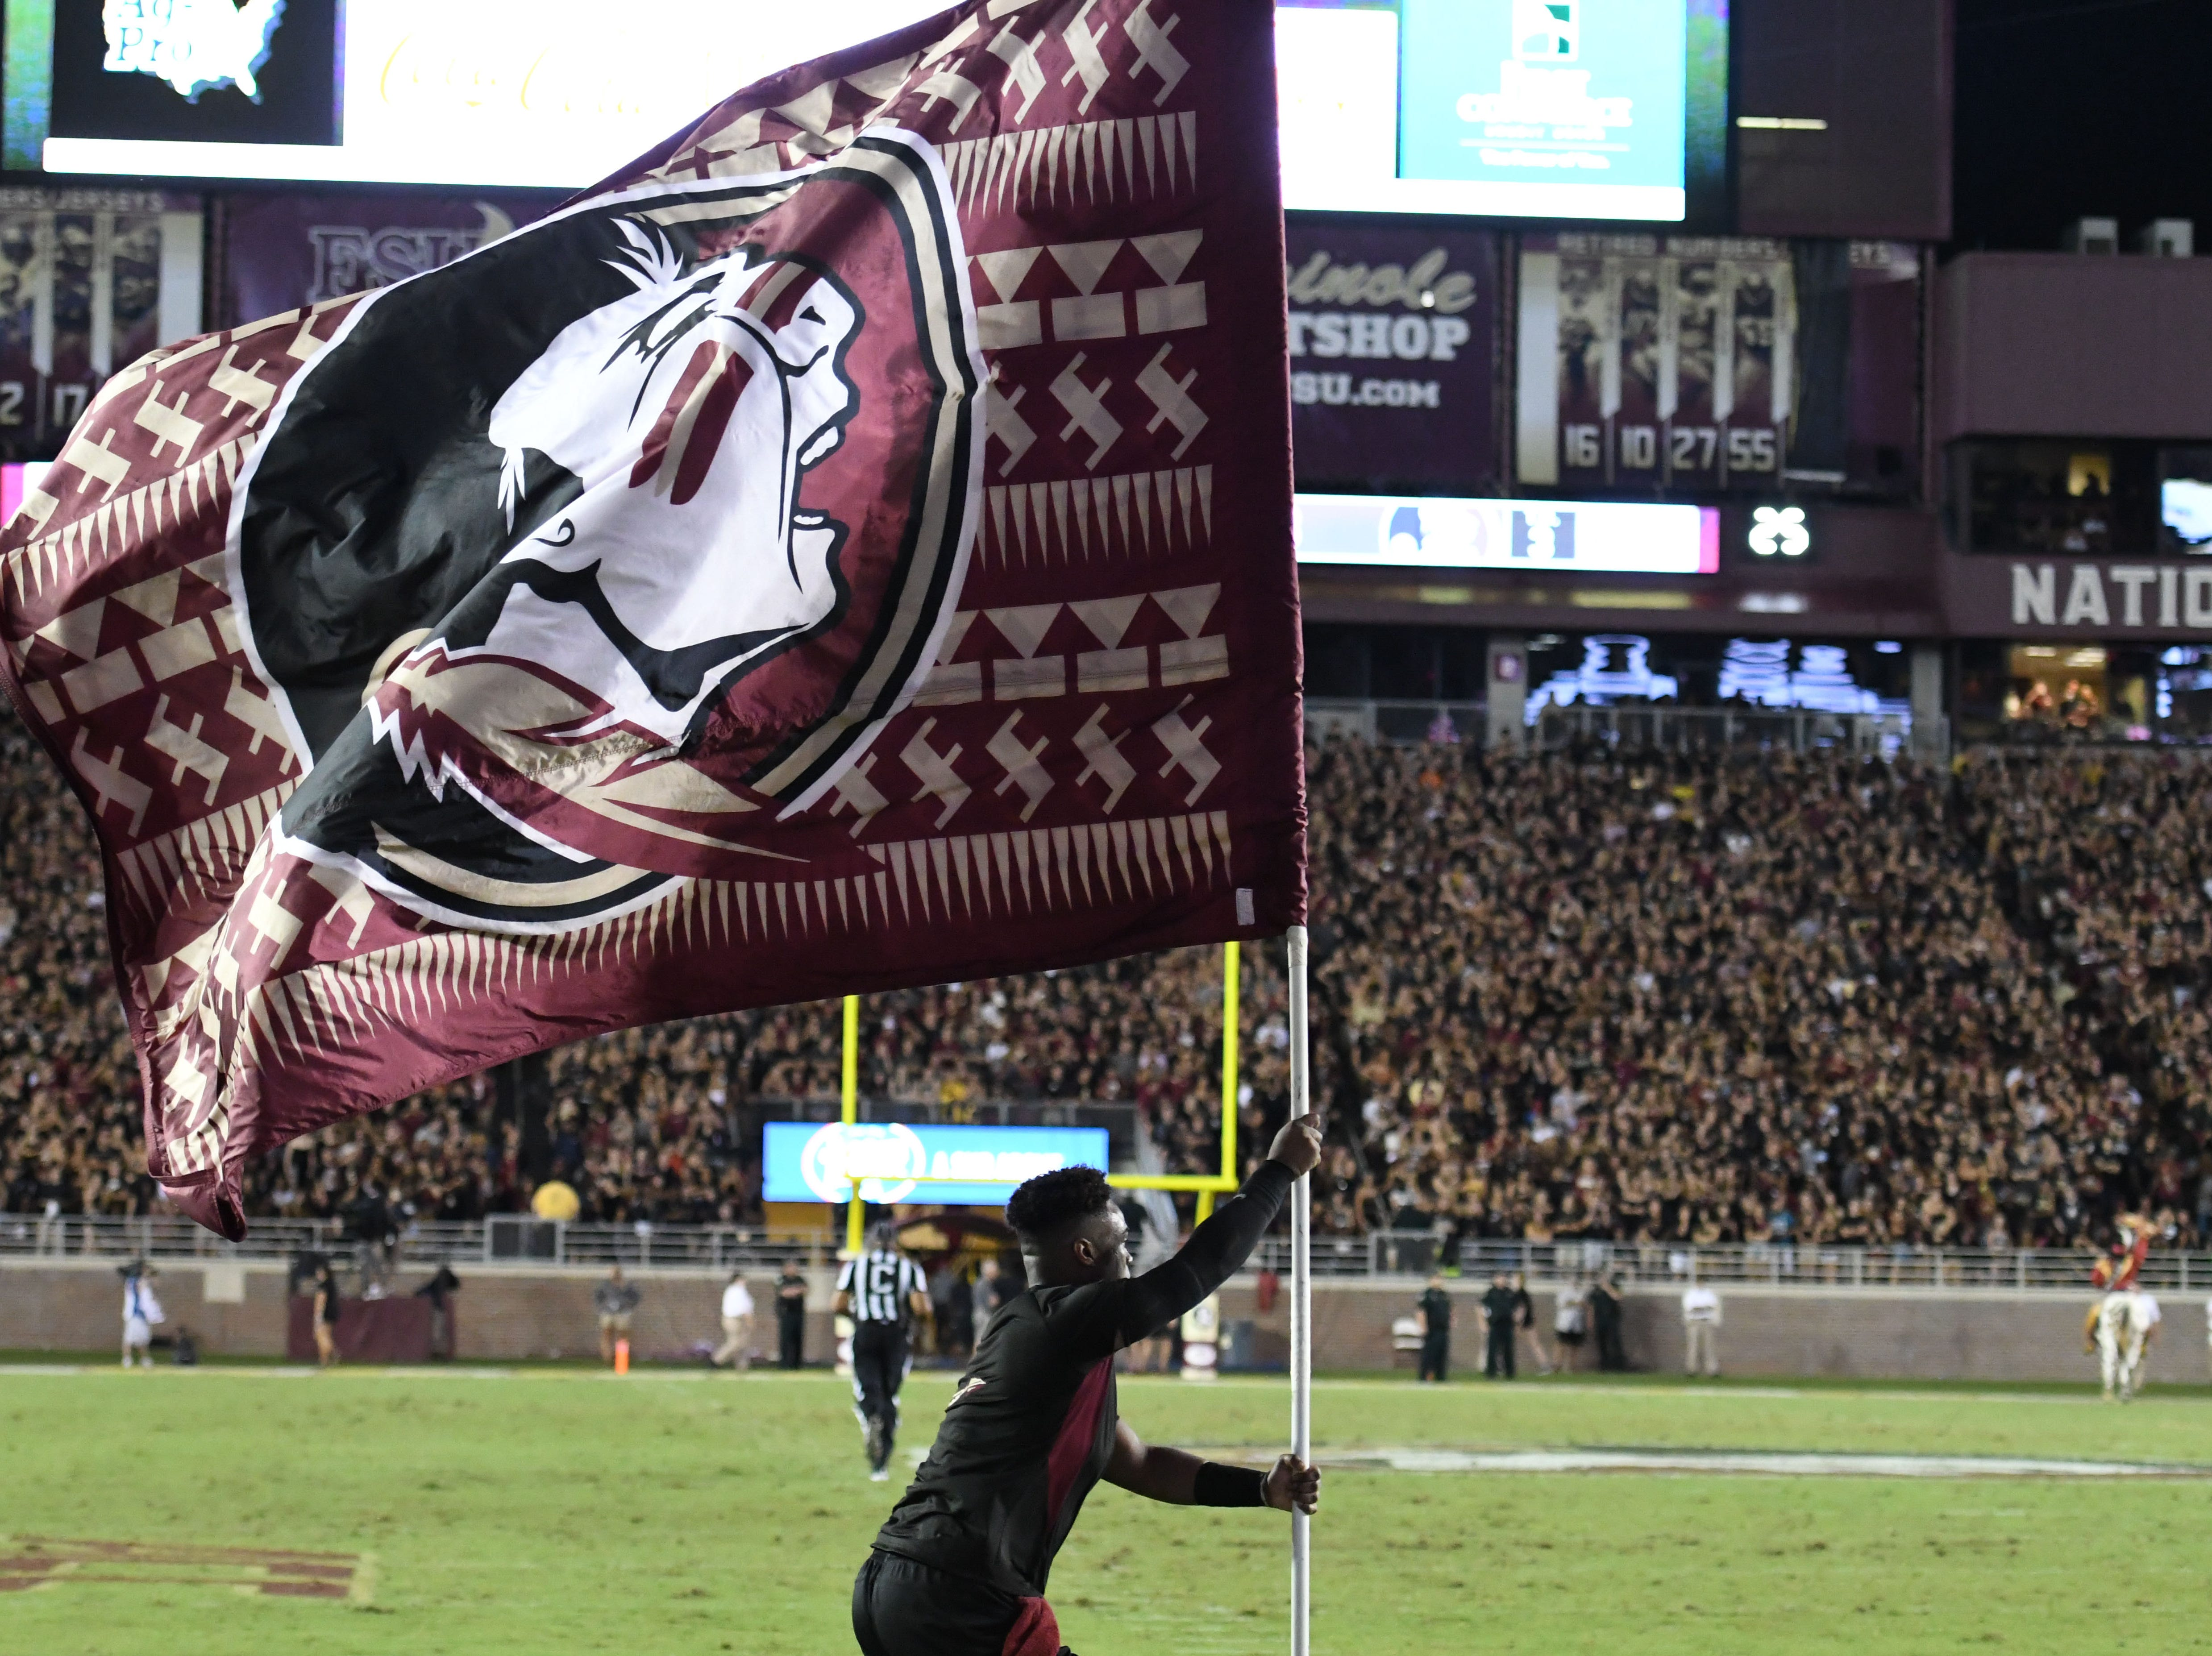 An attendance of 75,237 came to Florida State's first game of the year against Virginia Tech on Monday night.